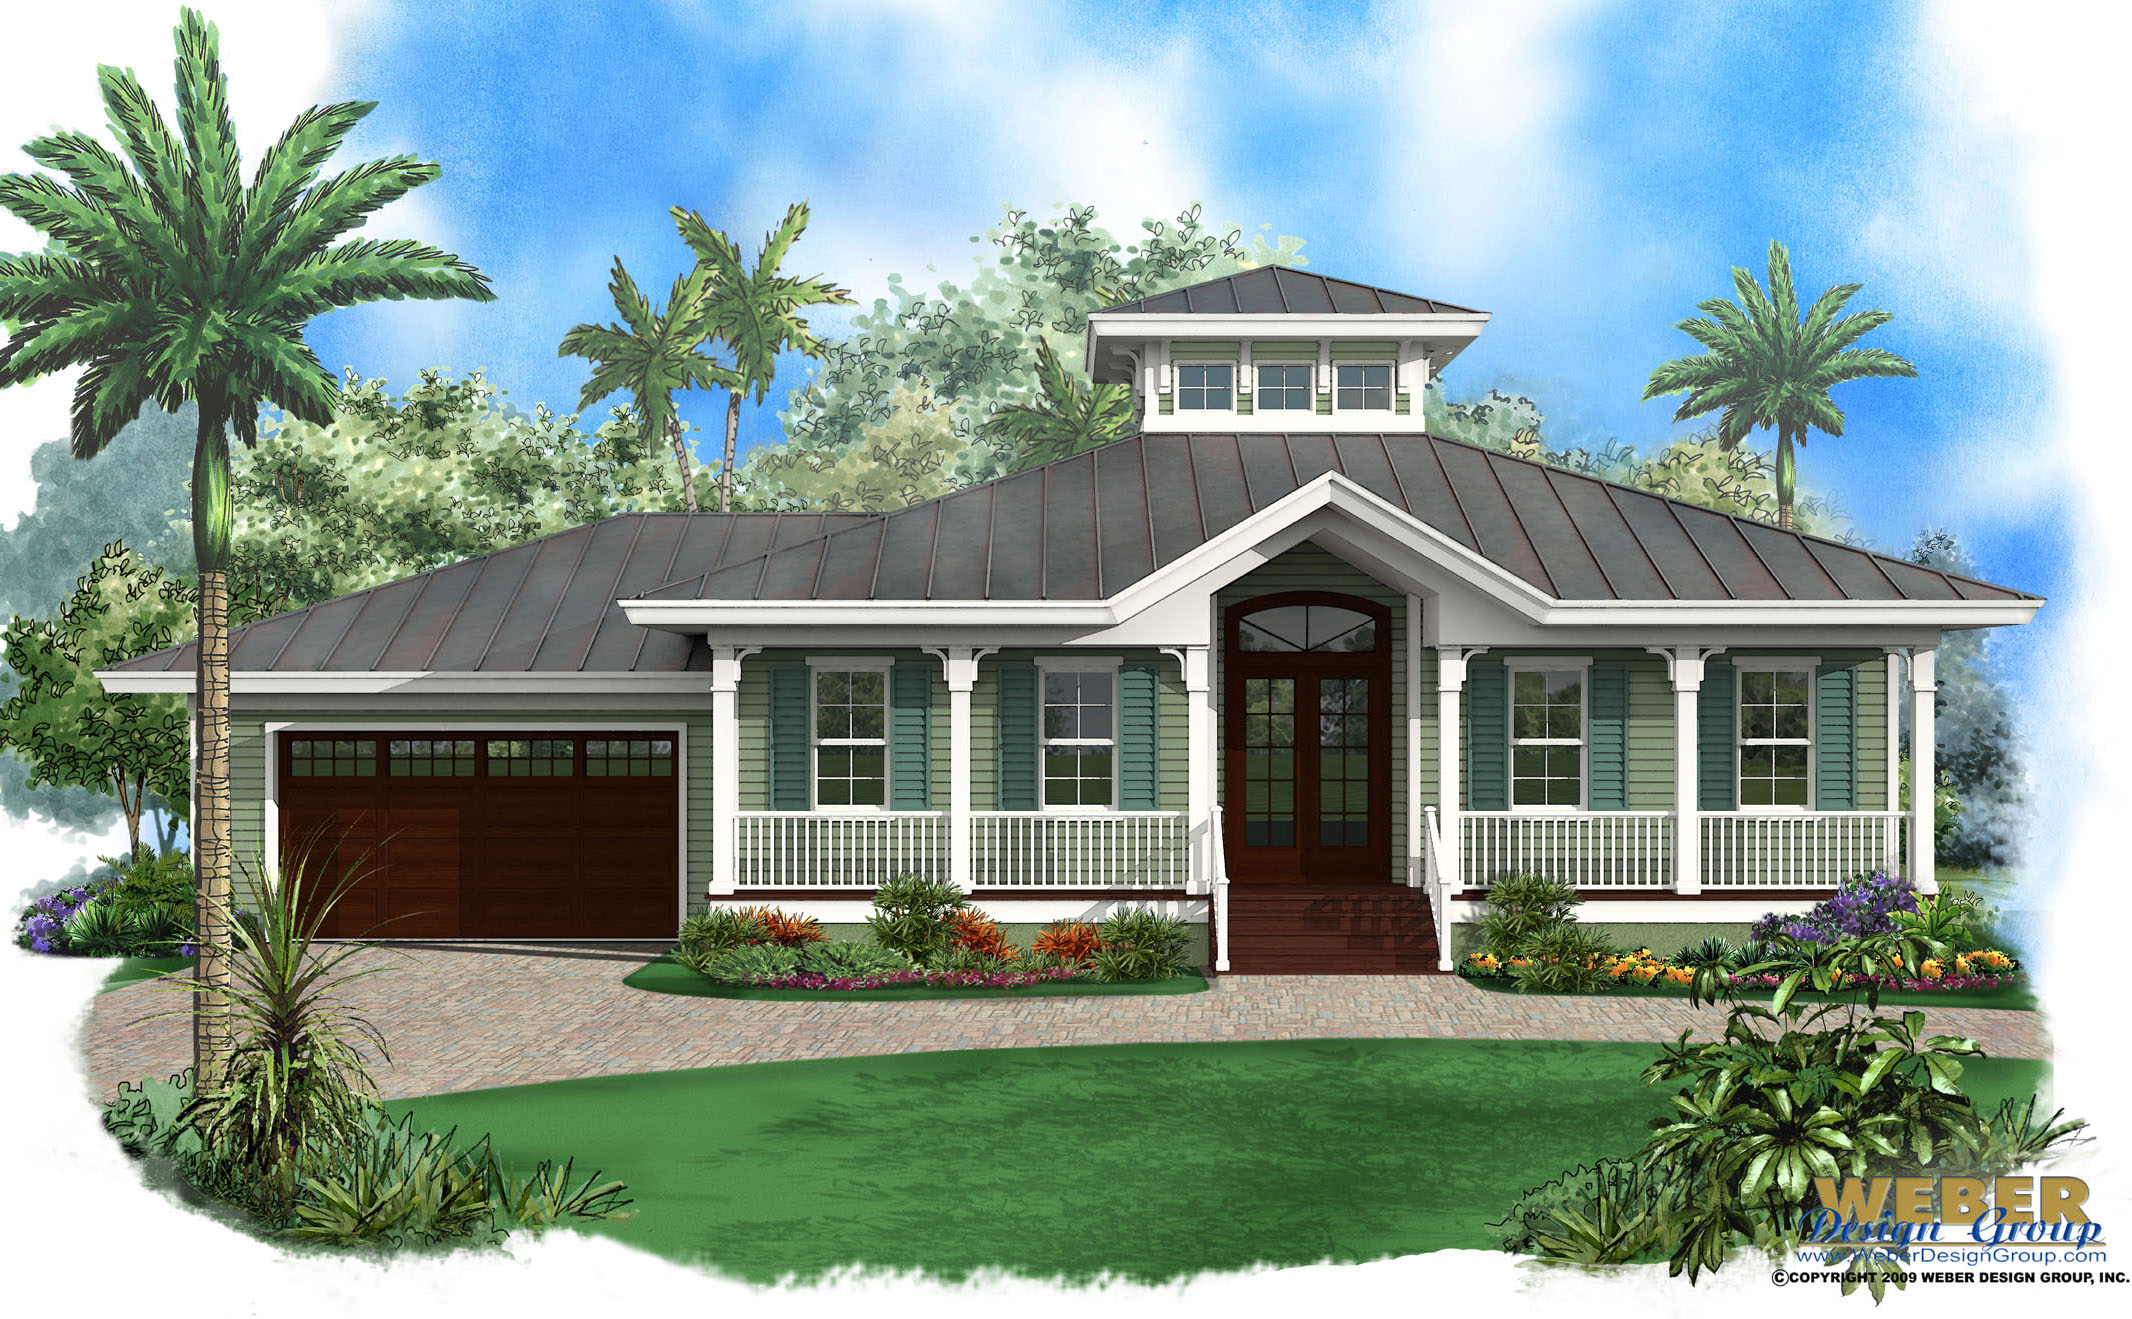 Tropical House Plans - Coastal, Waterfront & Island Styles with Photos